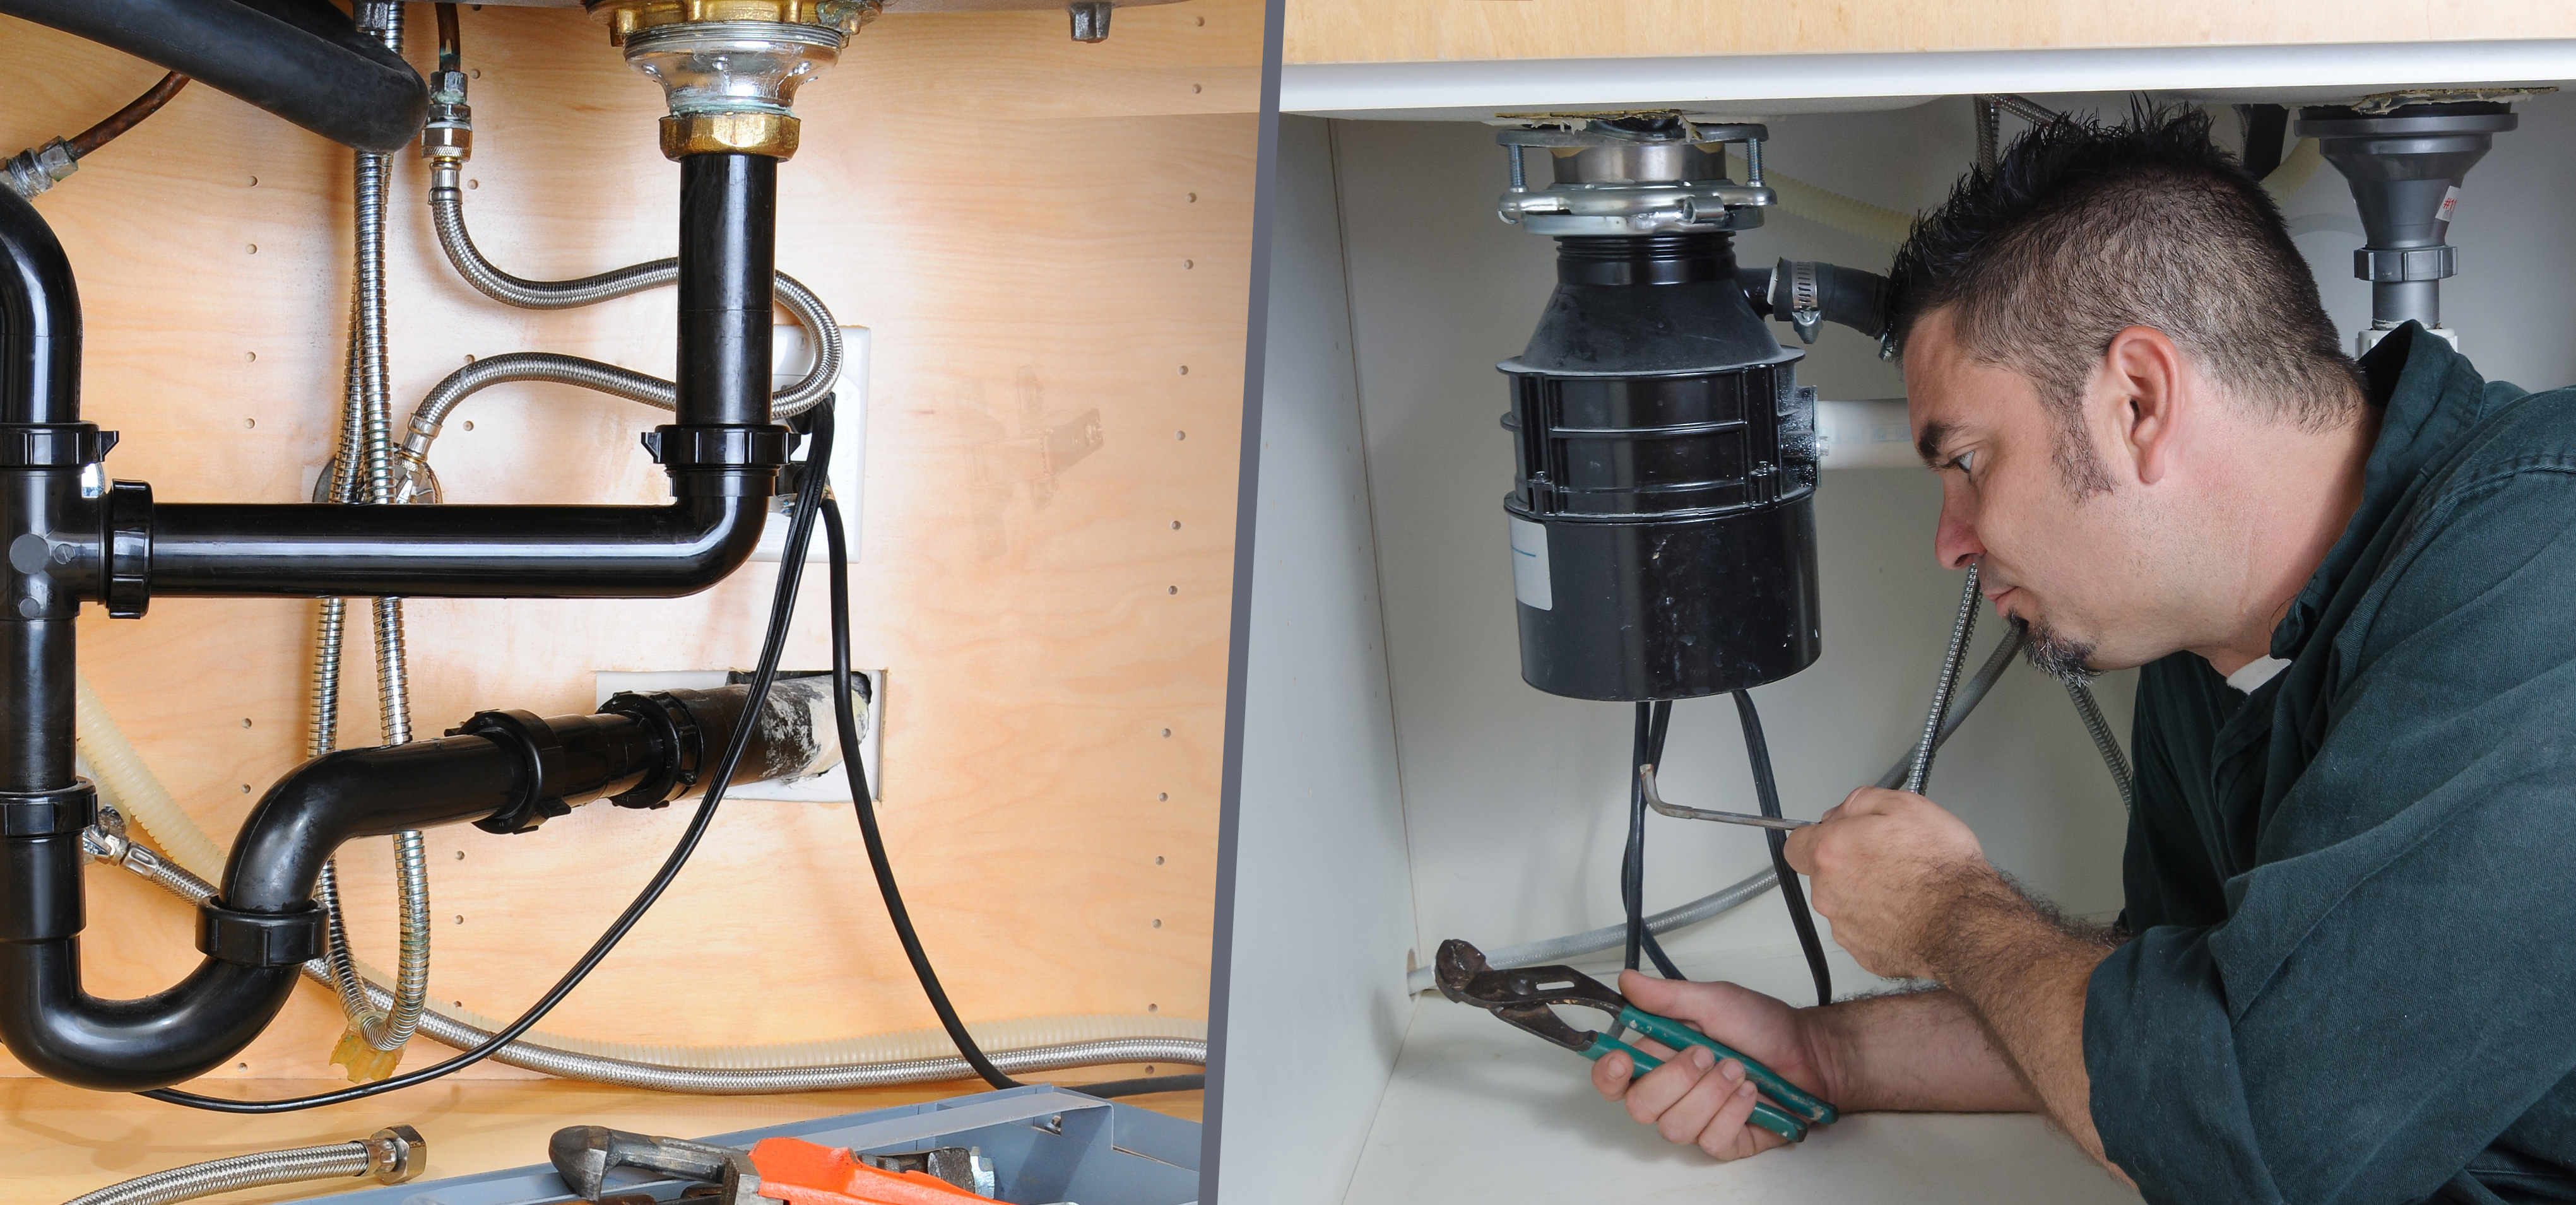 Garbage Disposal Replacement Services In North Carolina